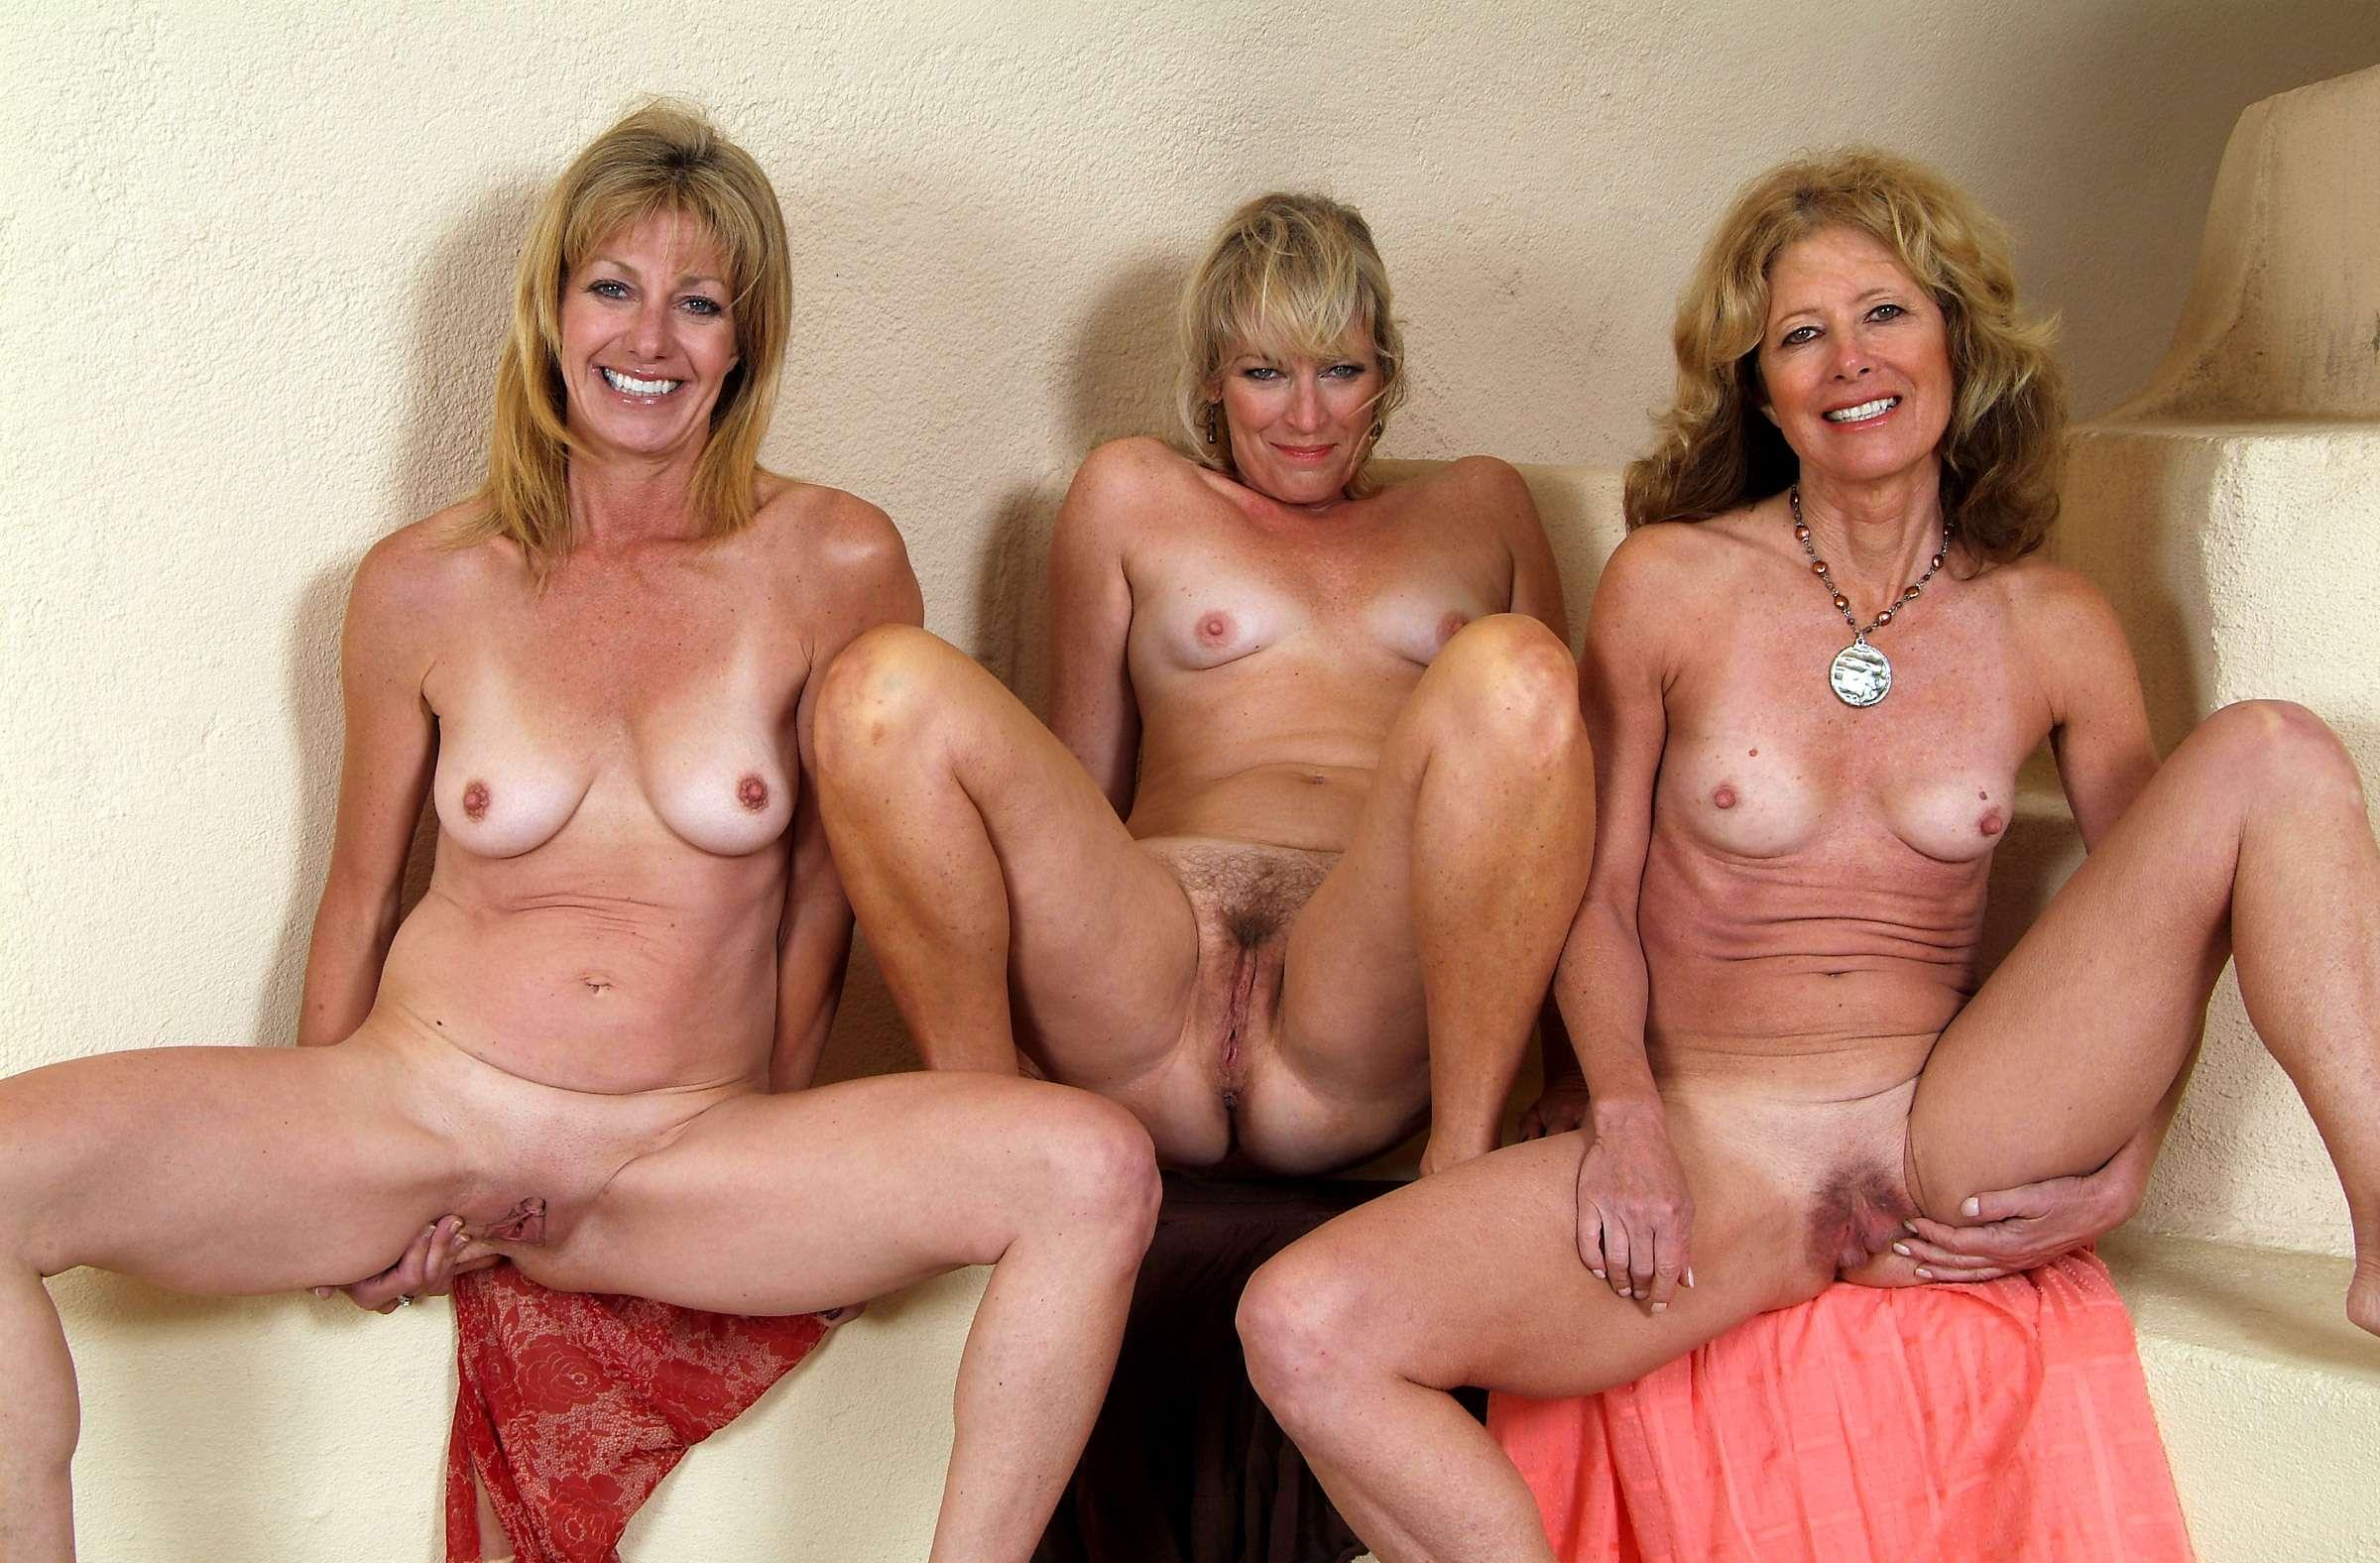 naked mom group pictures